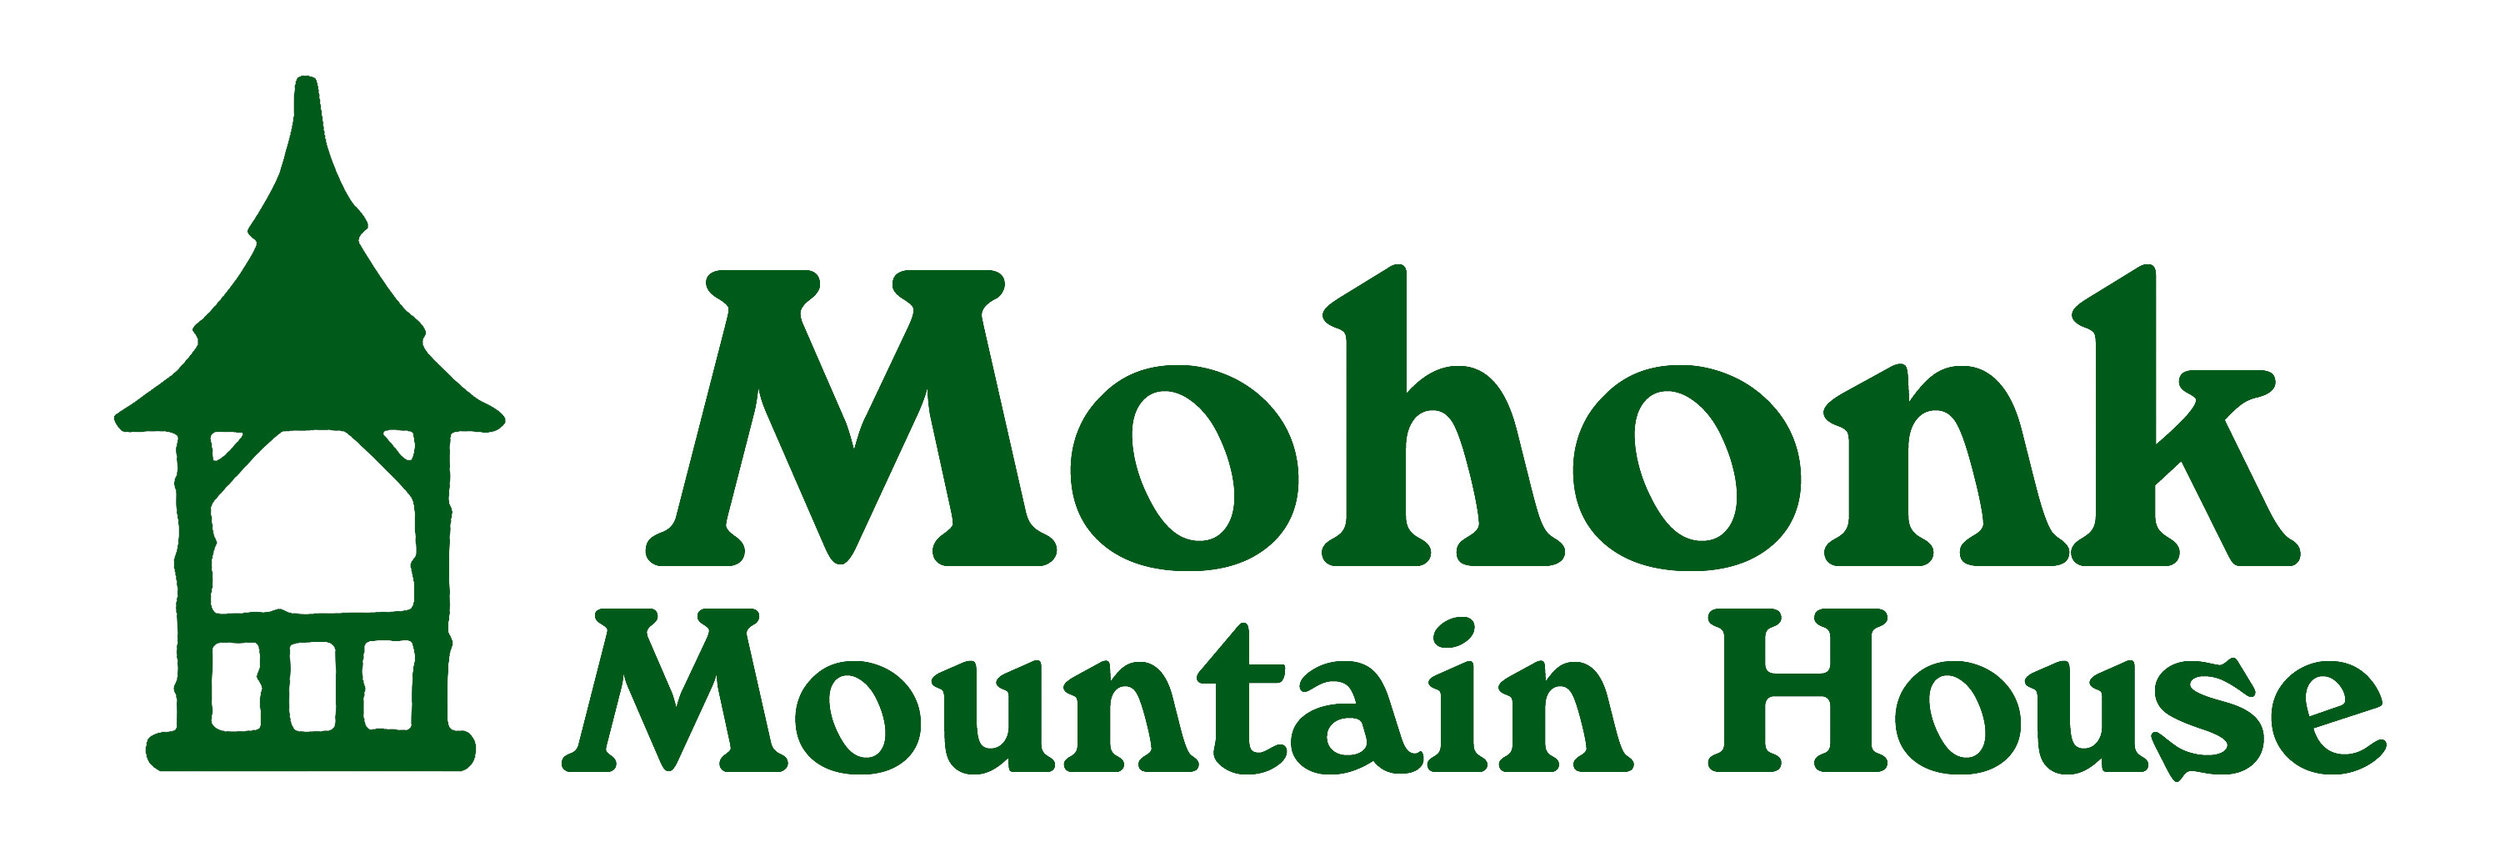 Mohonk Mountain House logo Green.jpg